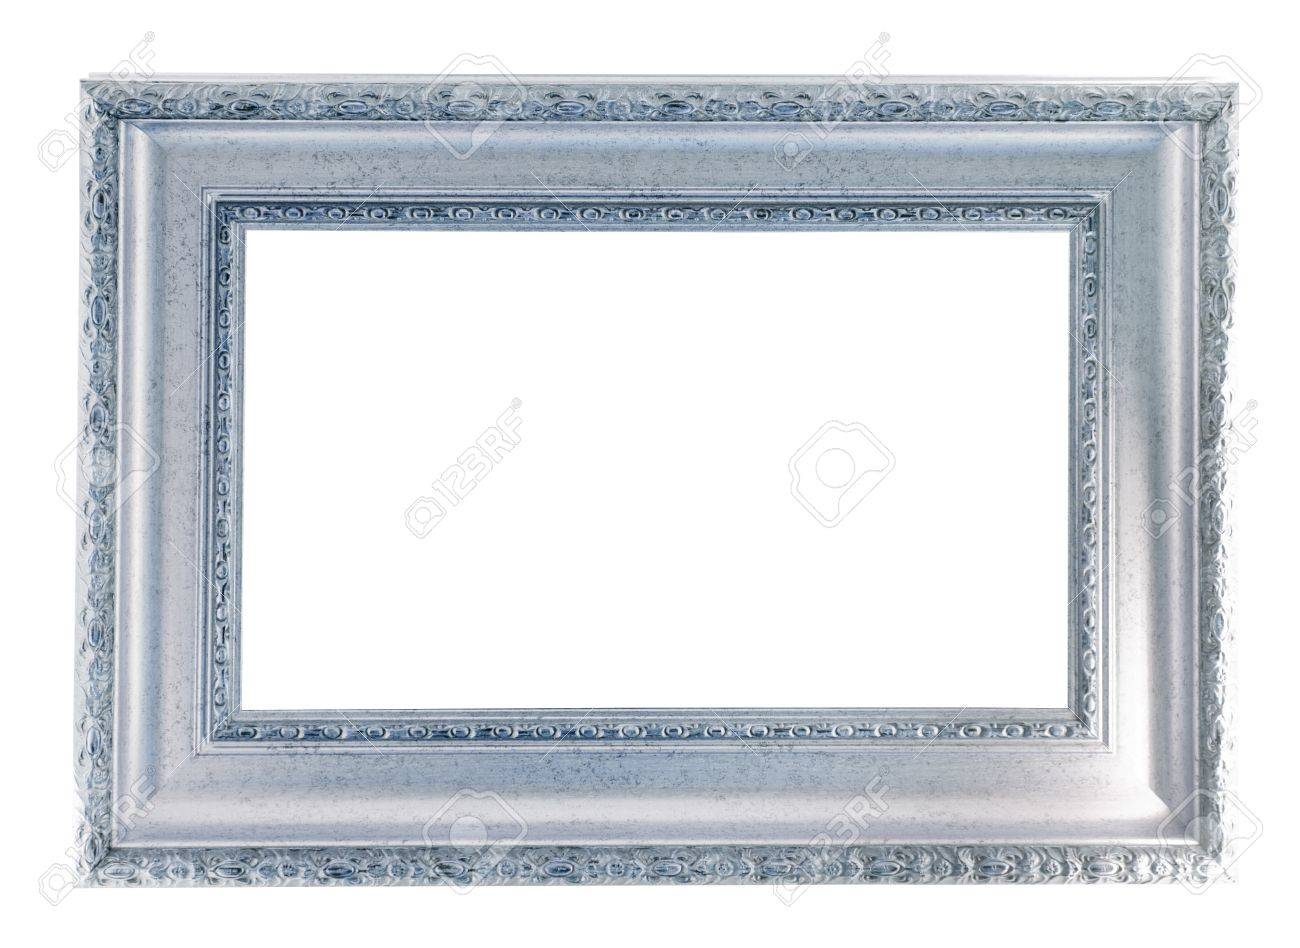 silver frame. Isolated over white background Stock Photo - 9061438